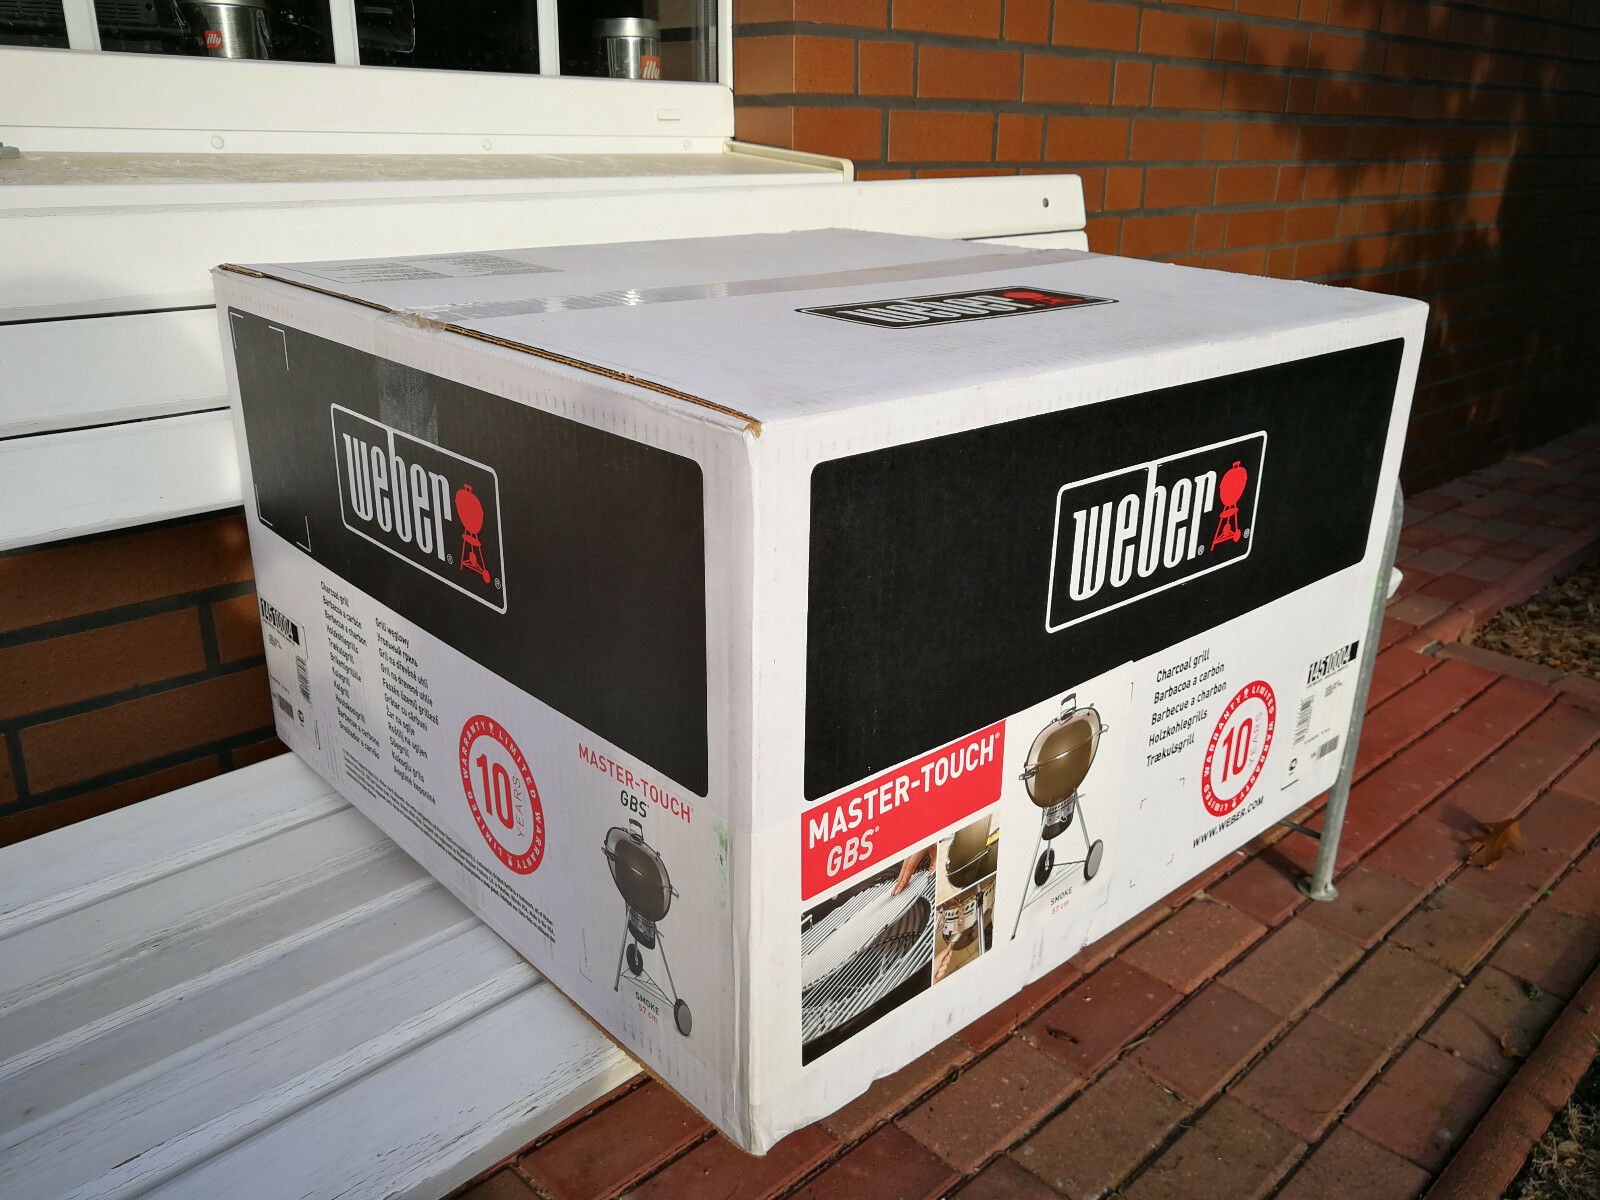 Weber Holzkohlegrill Master Touch Gbs 57 Cm Special Edition Pro : Weber grill master touch gbs 57 test vergleich weber grill